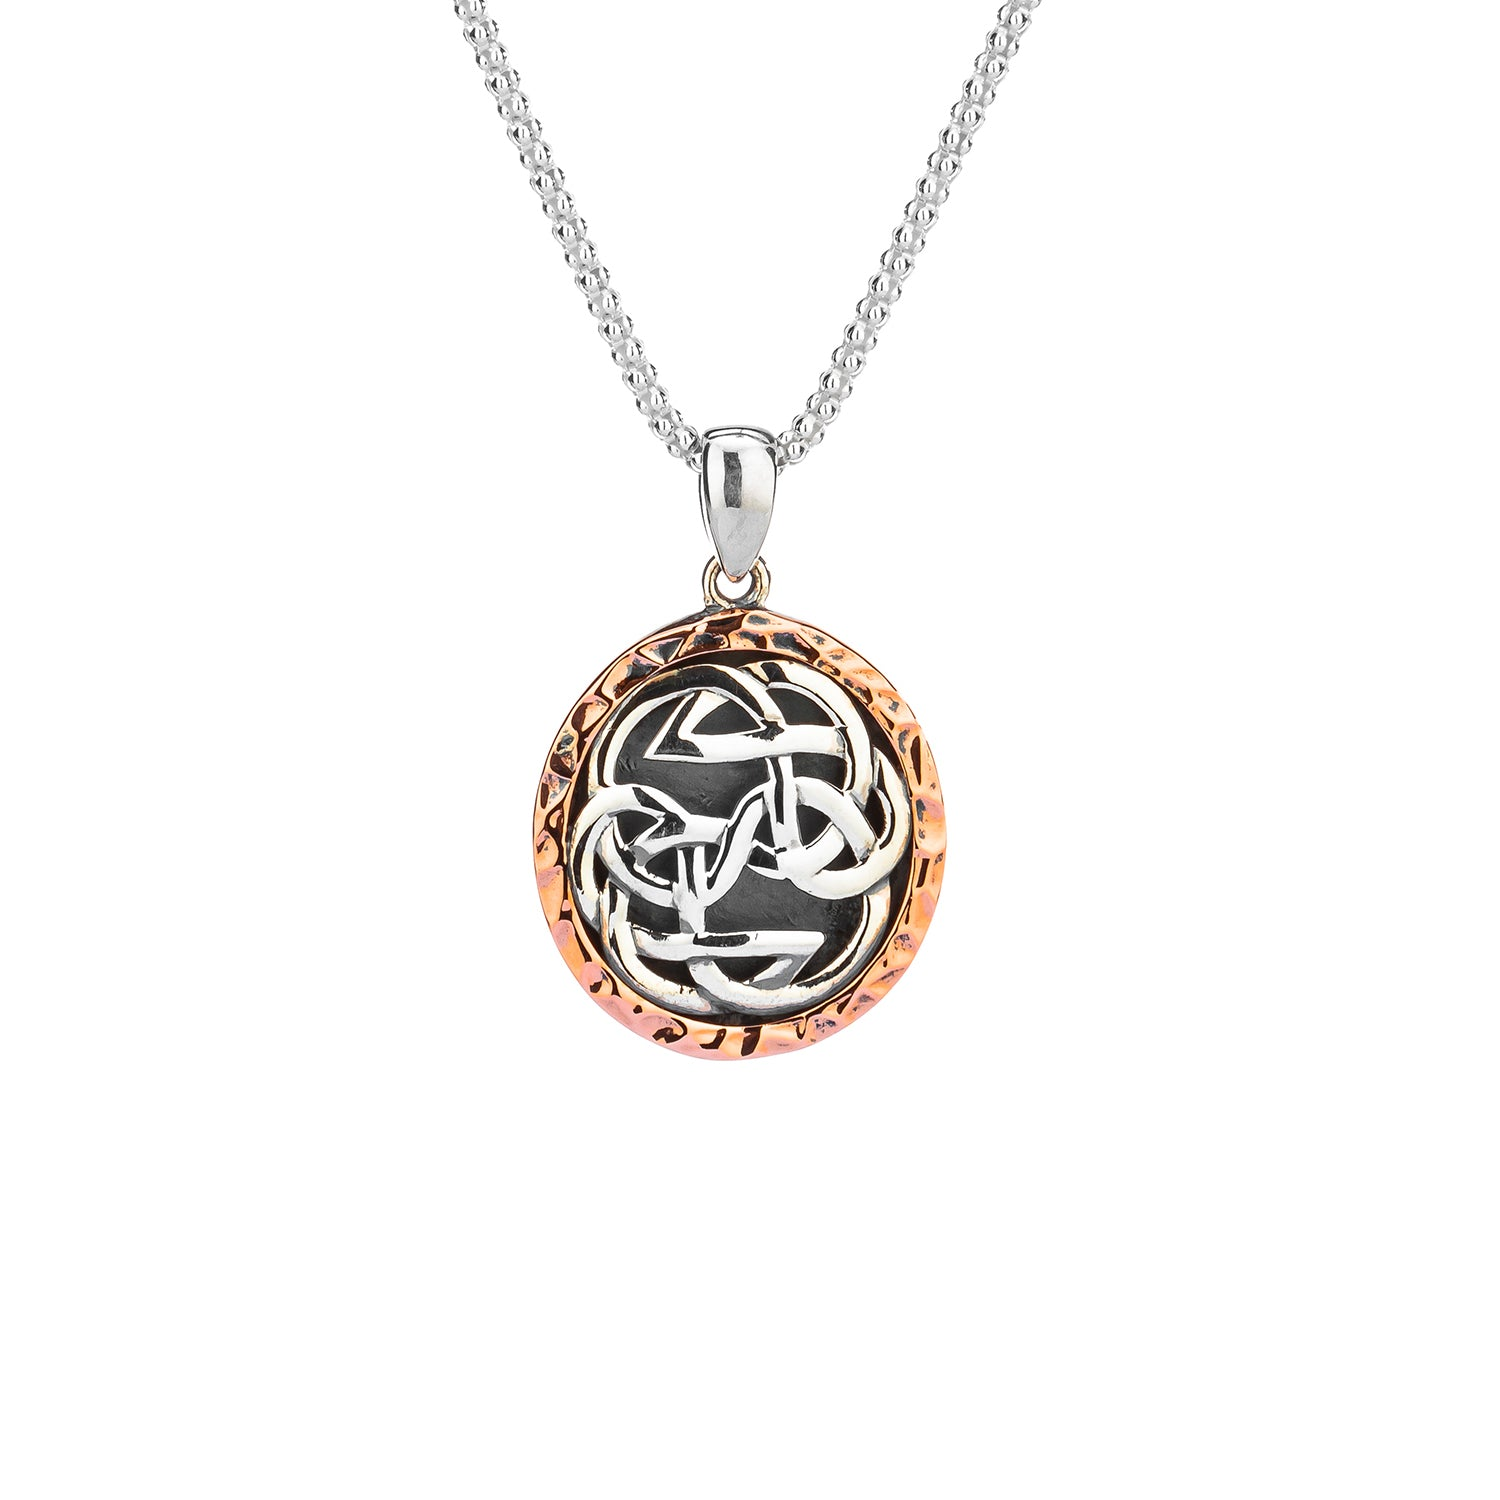 Pendant Oxidized 10k Rose Lewis Knot - Path of Life Pendant from welch and company jewelers near syracuse ny